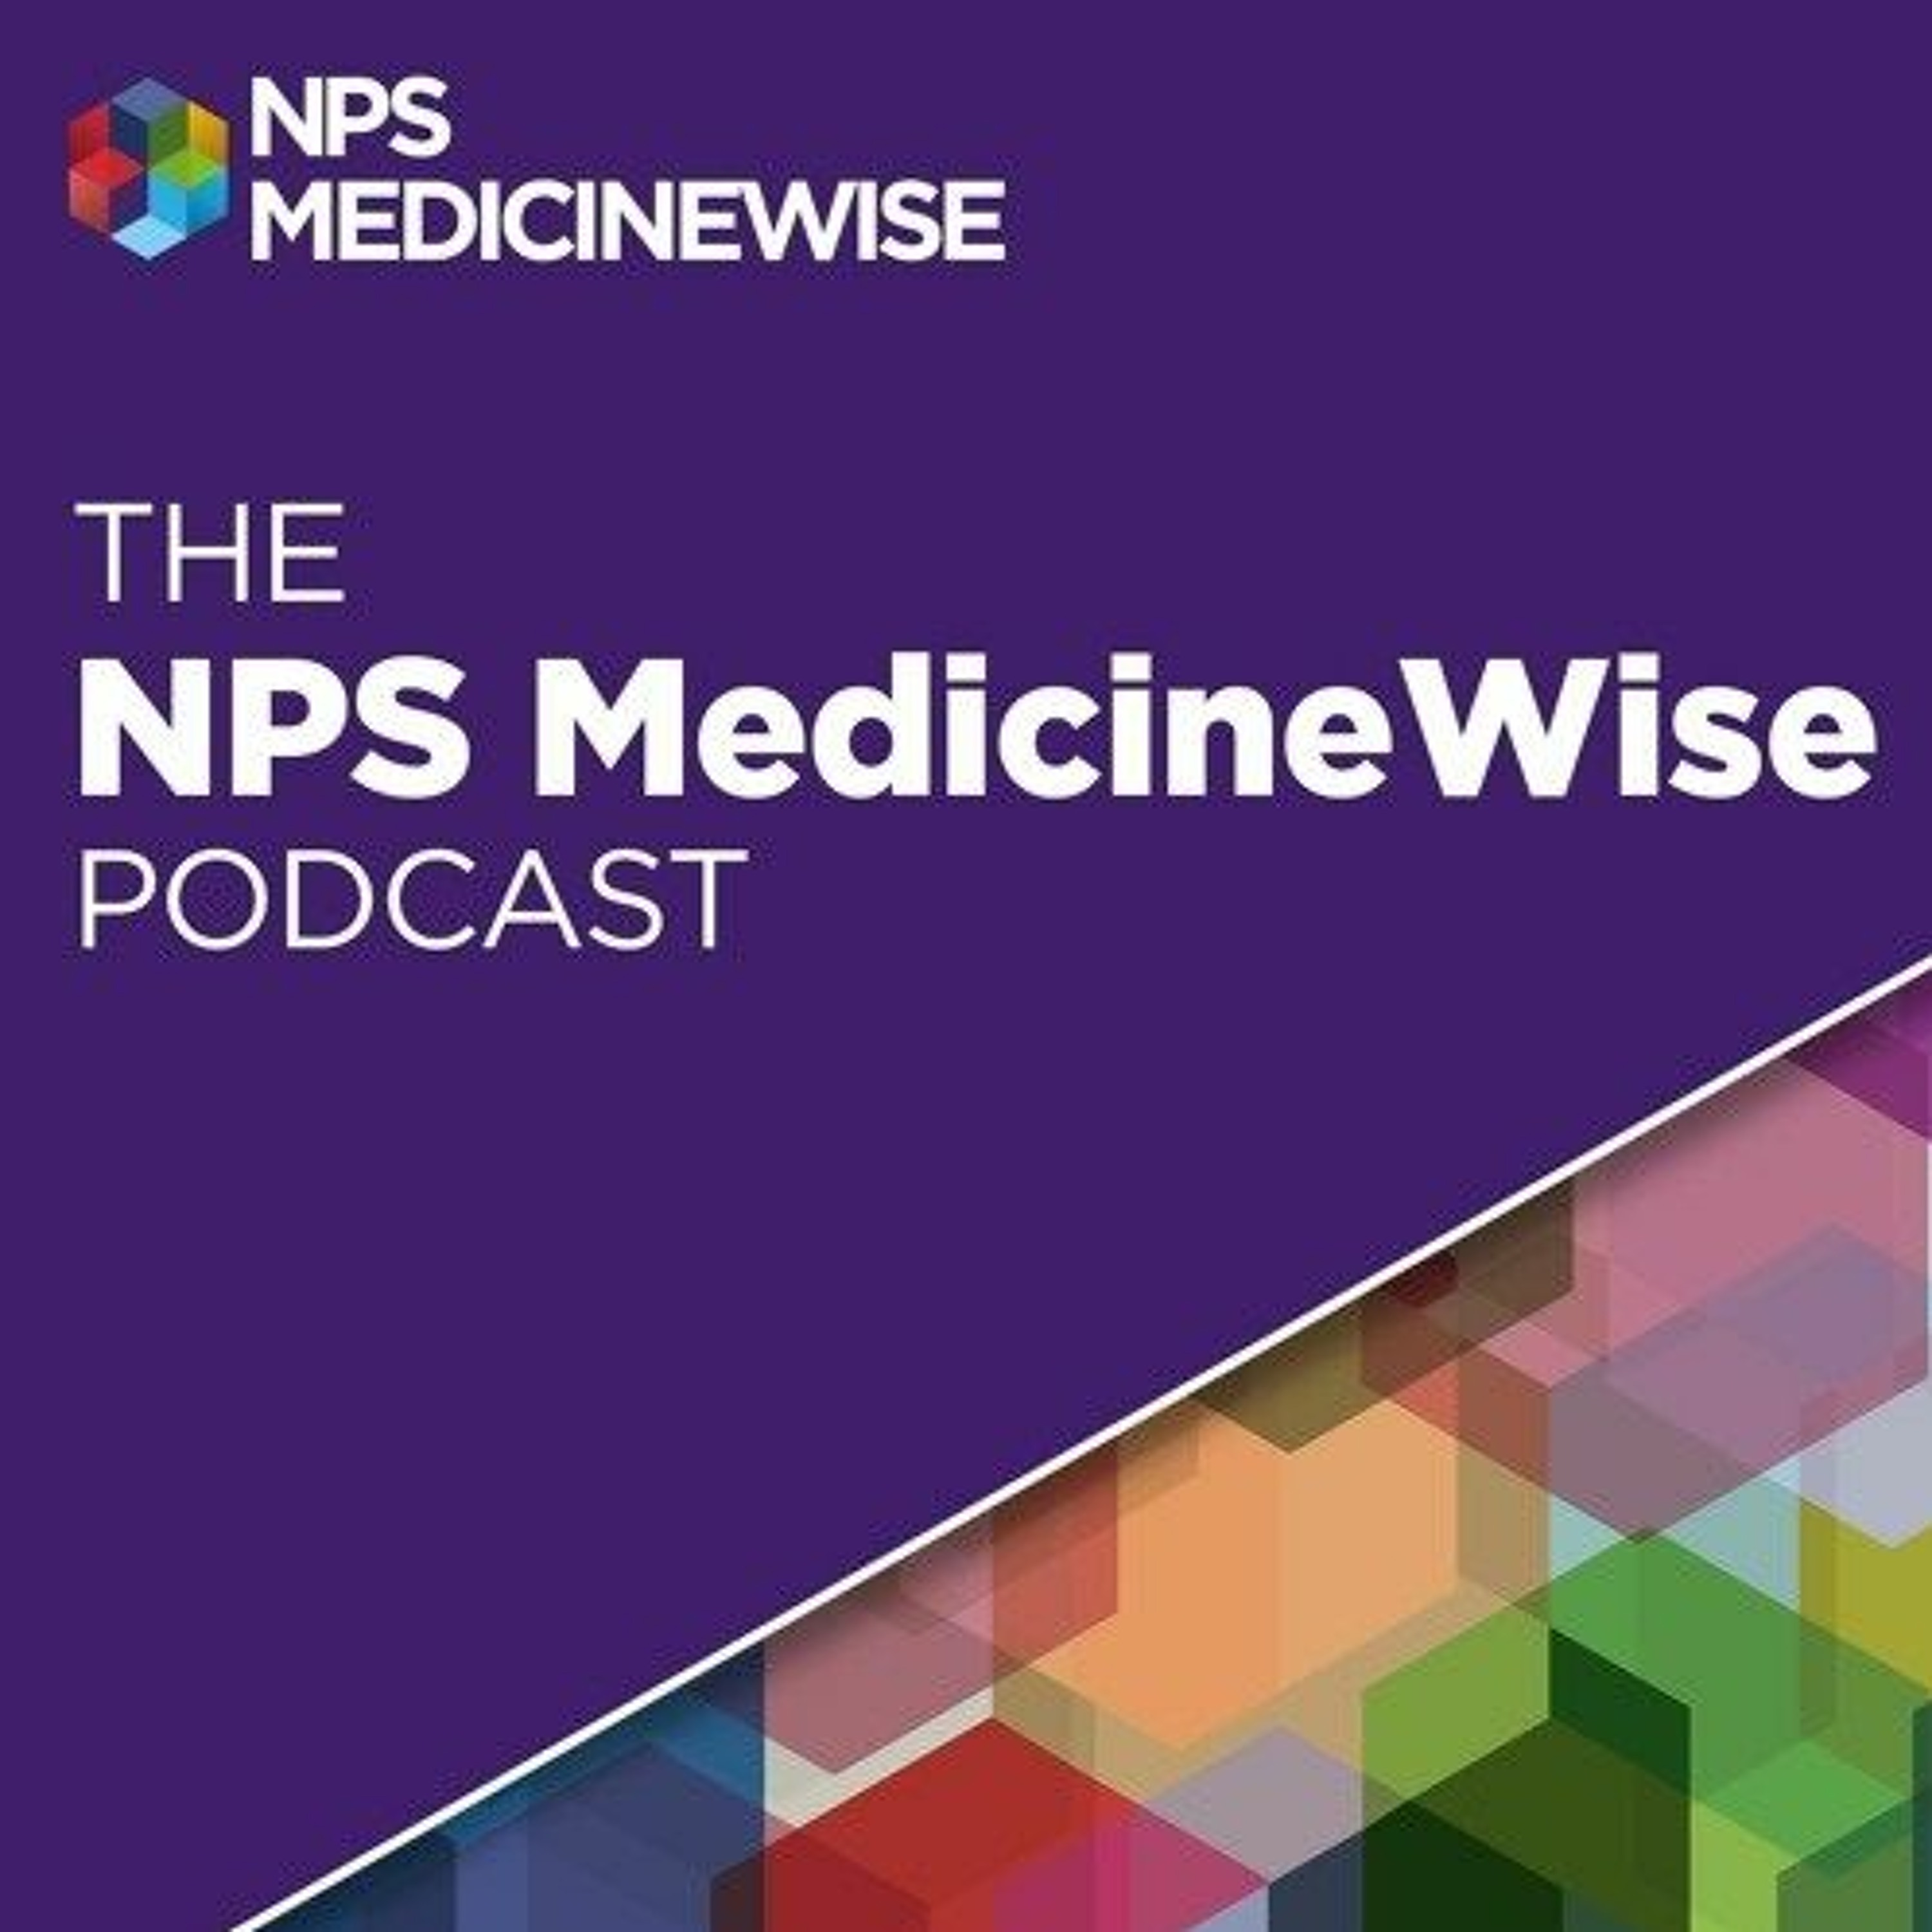 Episode 13: Talking about medicines in culturally and linguistically diverse communities